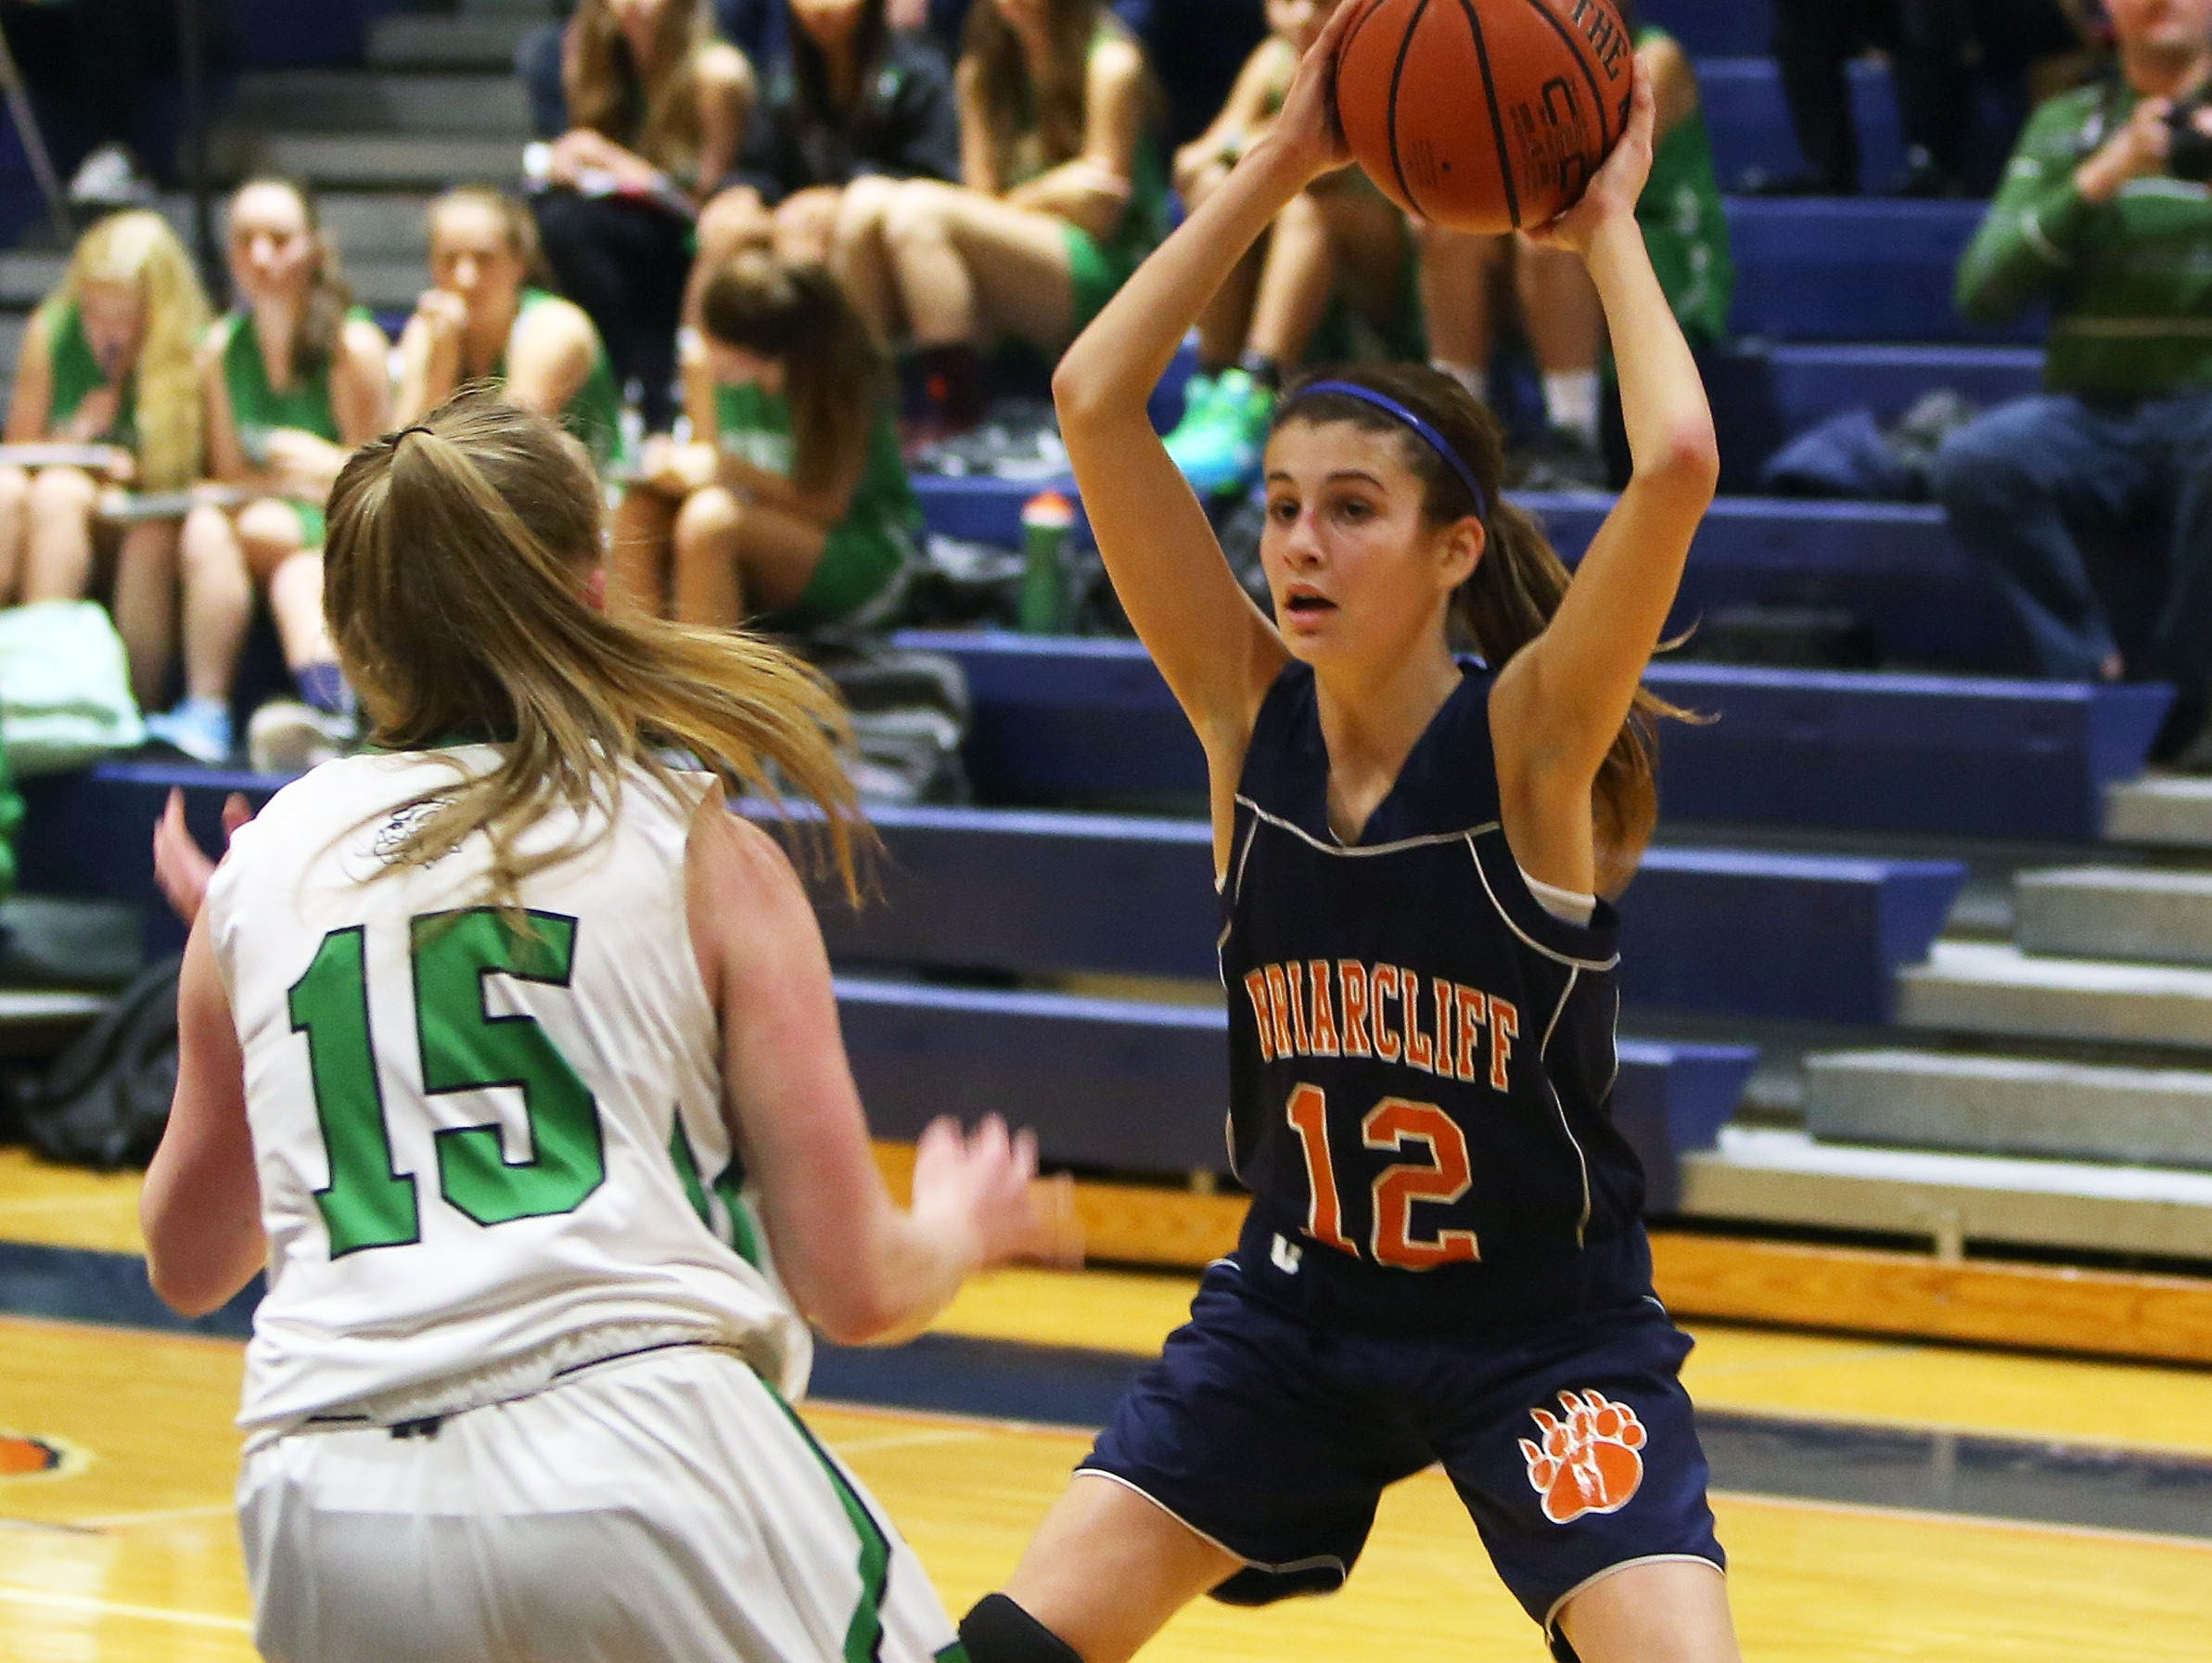 Irvington defeated Briarcliff 71-57 in a girls basketball game at Briarcliff High School Dec. 1, 2015.